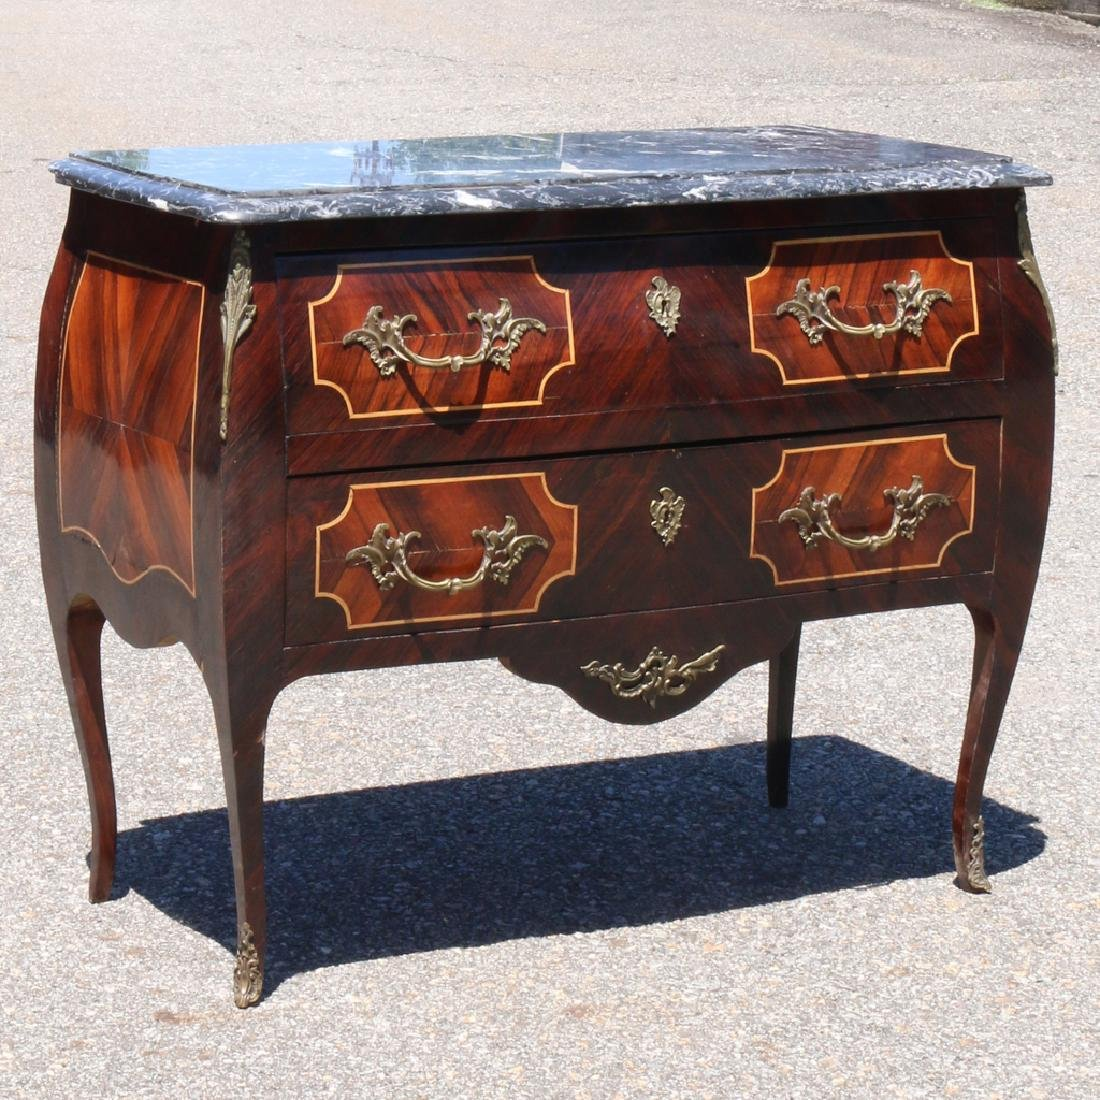 LOUIS XV-STYLE BOMBE COMMODE